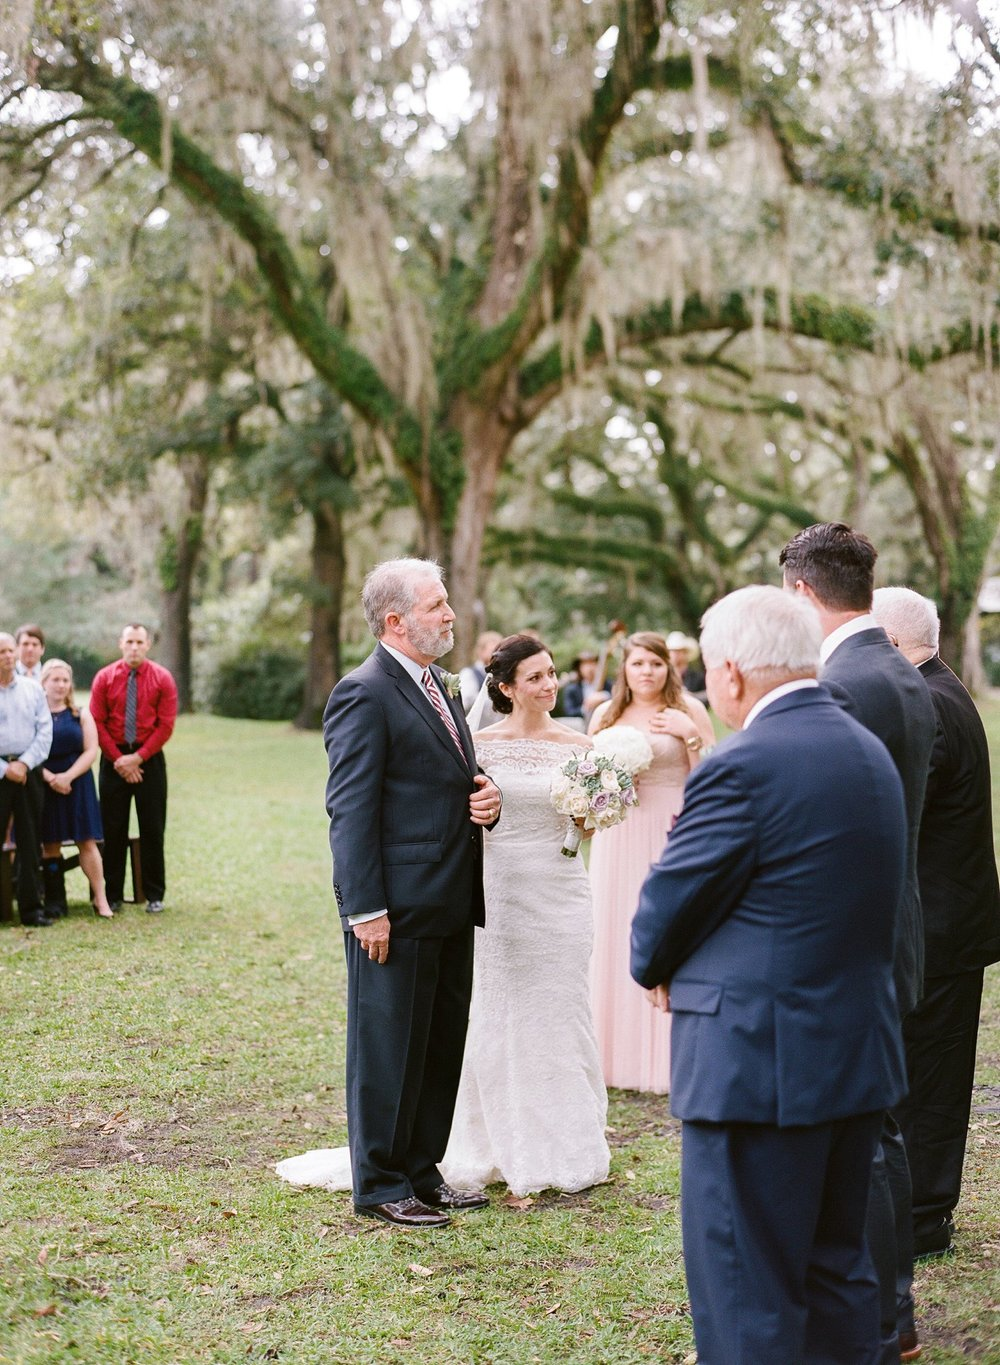 santa rosa beach wedding photographer wedding in front of tree shannon griffin photography_0082.jpg